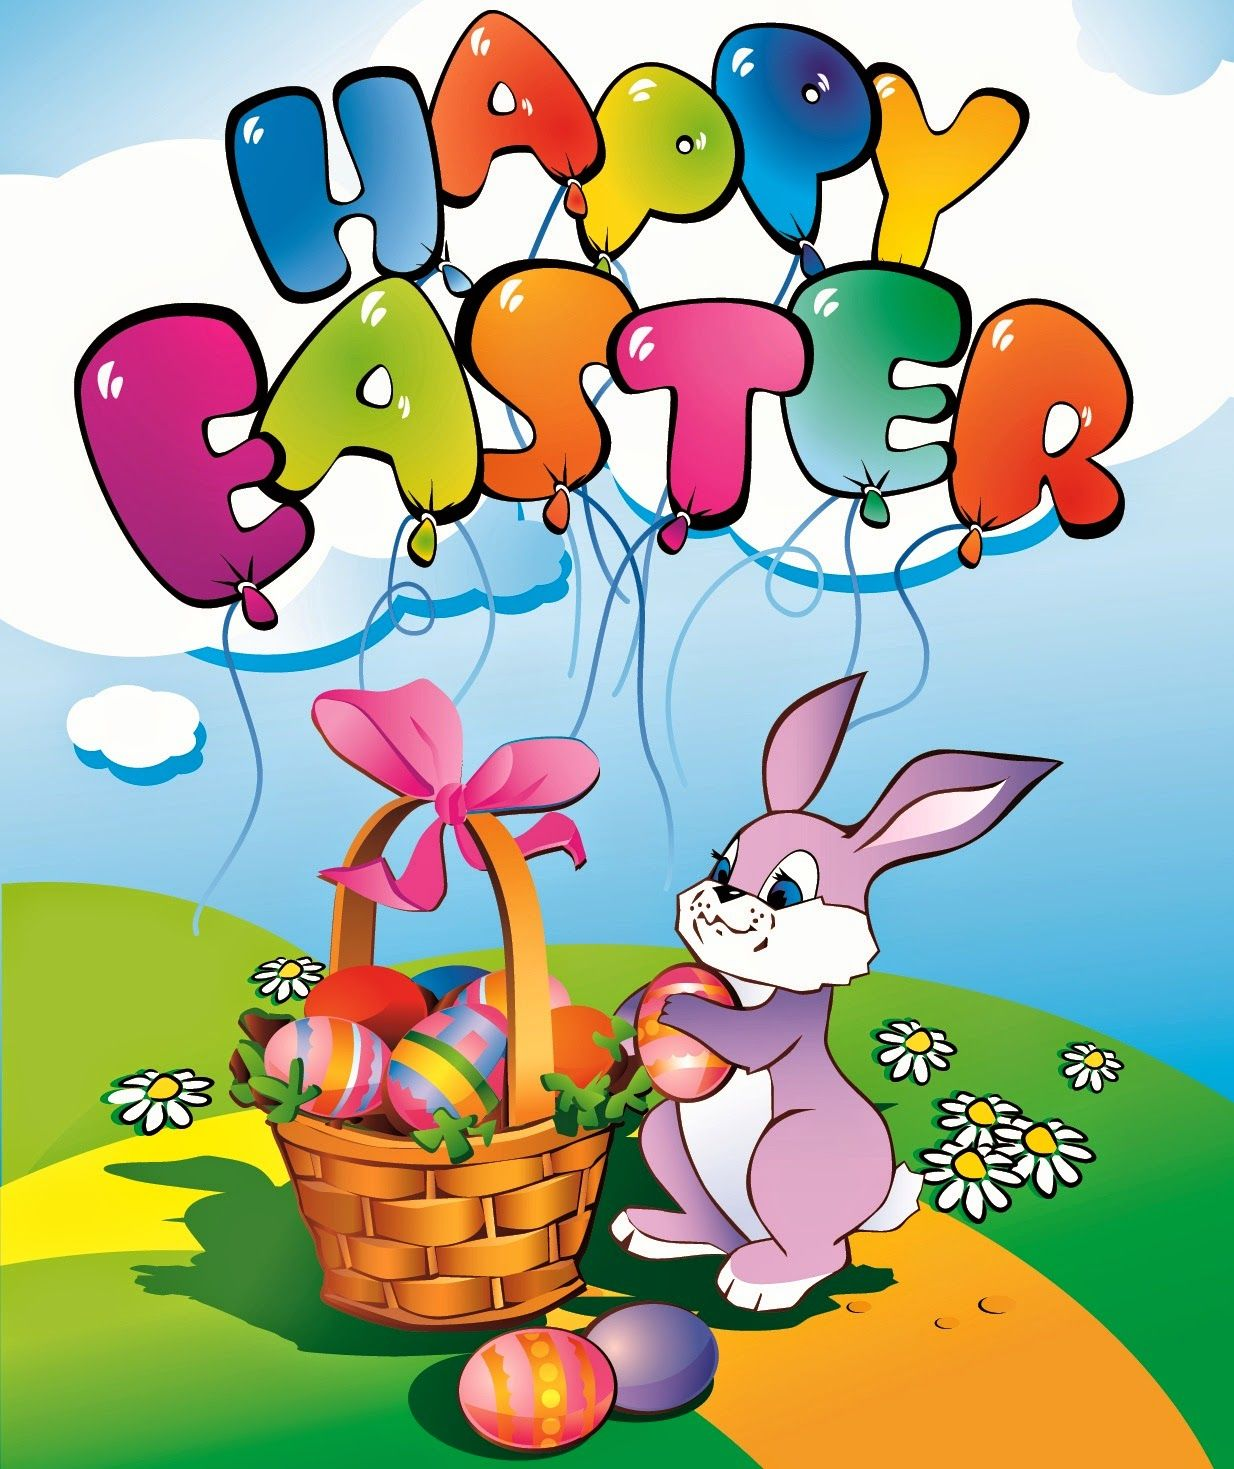 Easter greetings for facebook best easter imageseaster easter greetings for facebook best easter imageseaster picturescards wallpapers kristyandbryce Choice Image